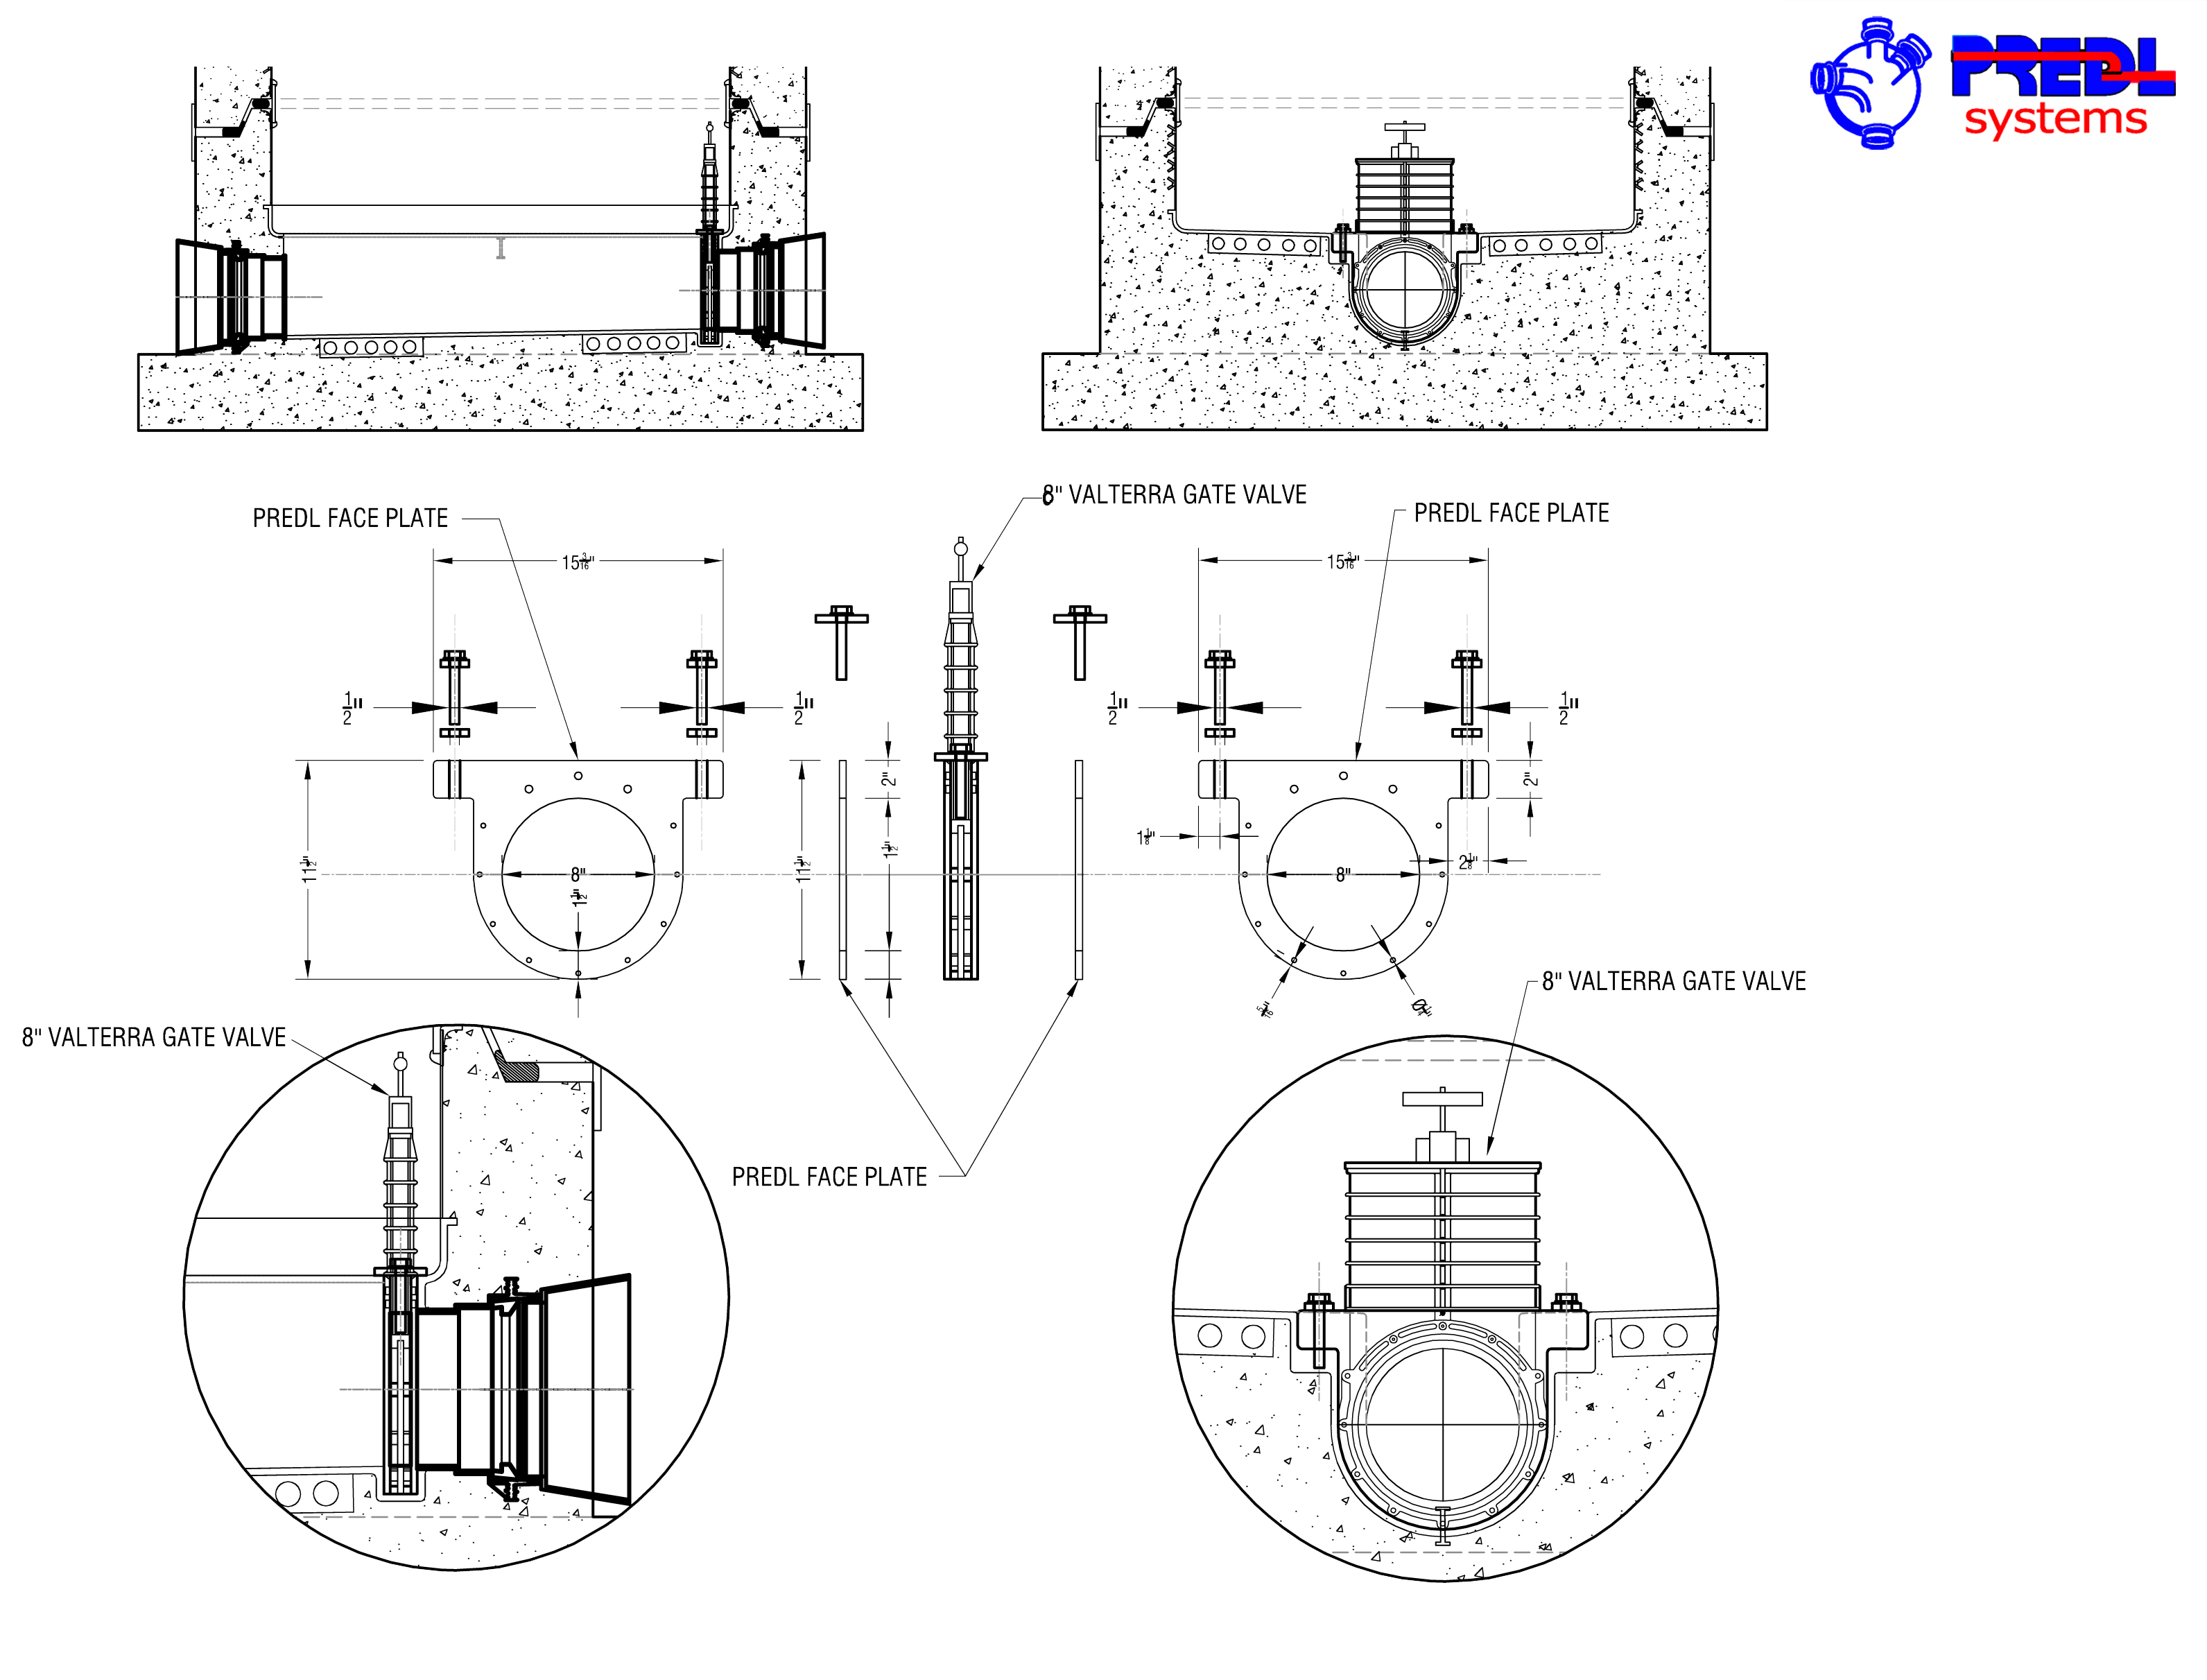 Backwater Protection Flow Gates in Sanitary Sewer Systems